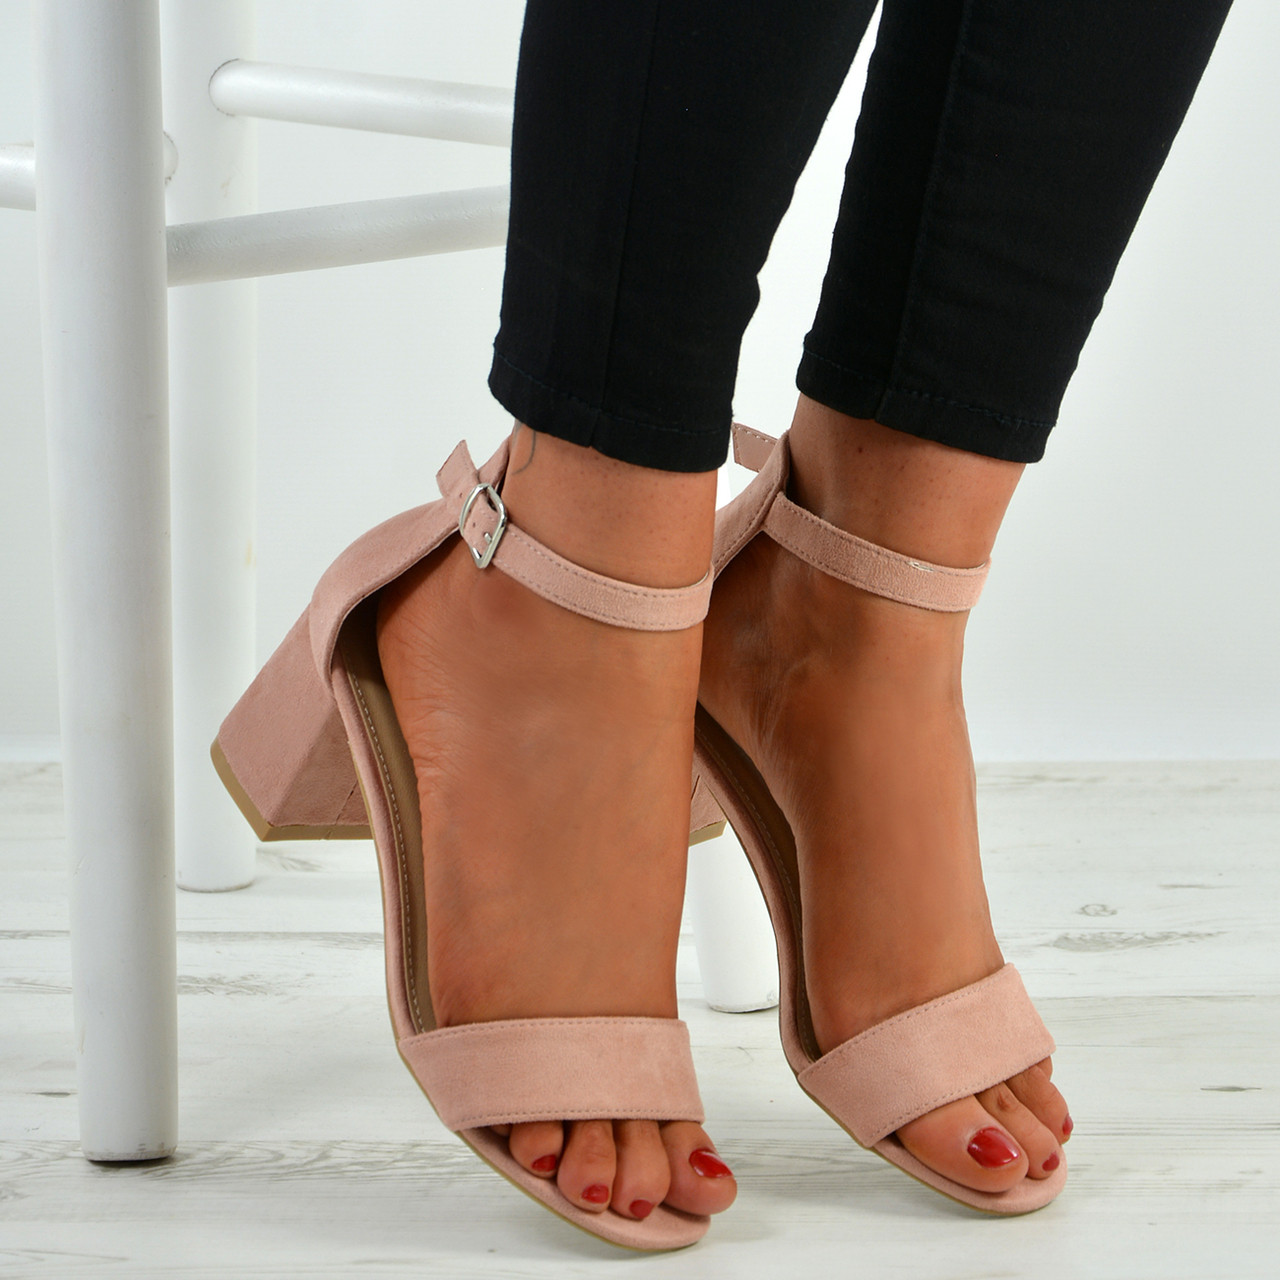 b2df9917e6f9 New Womens Ladies Mid Block Heel Ankle Strap Peep Toe Shoes Sandals Sizes